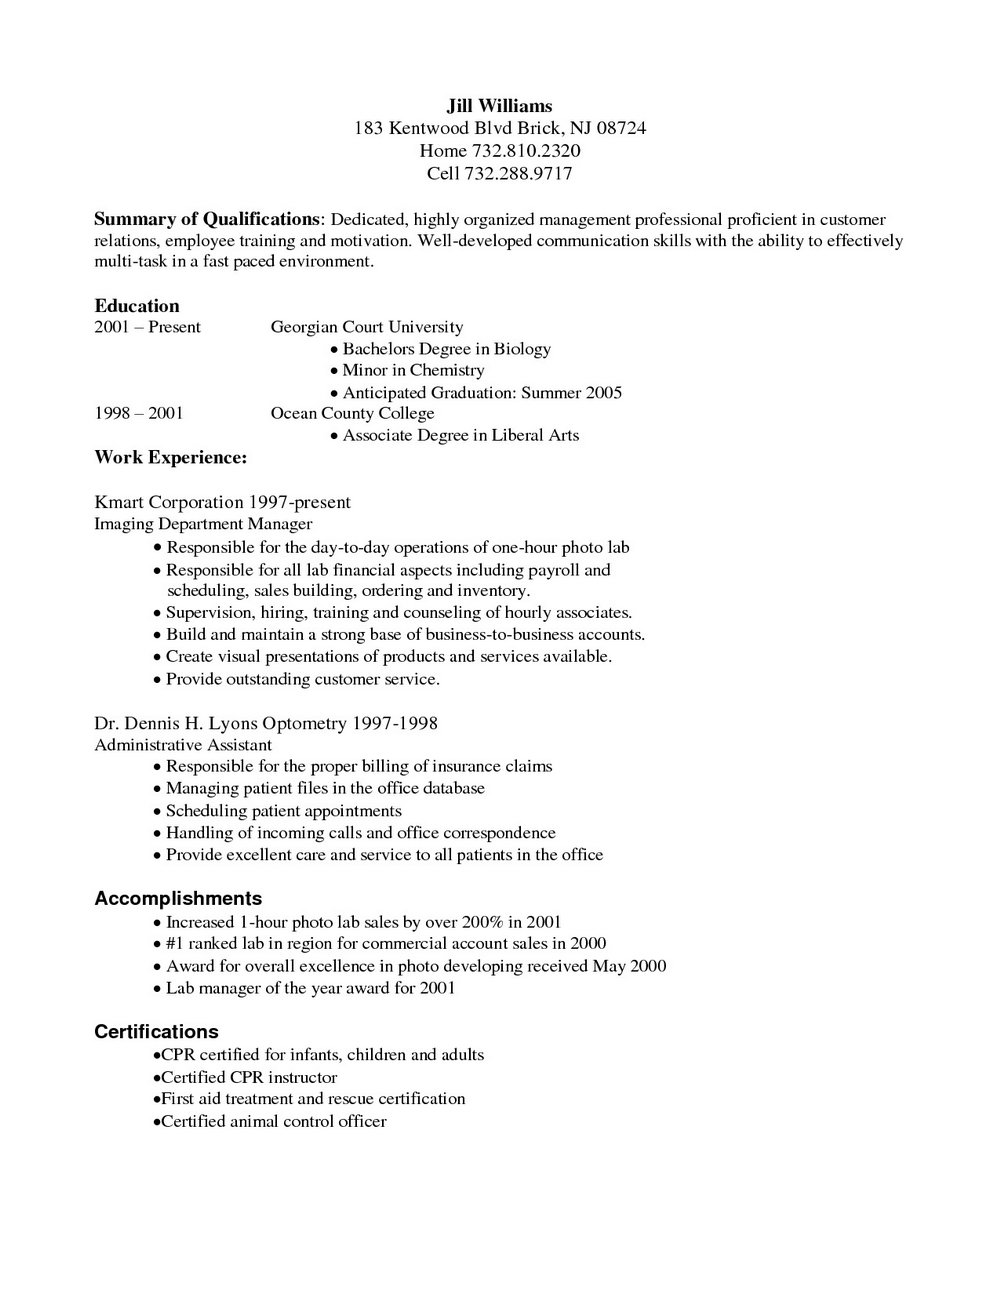 Medical Billing And Coding Resume Samples